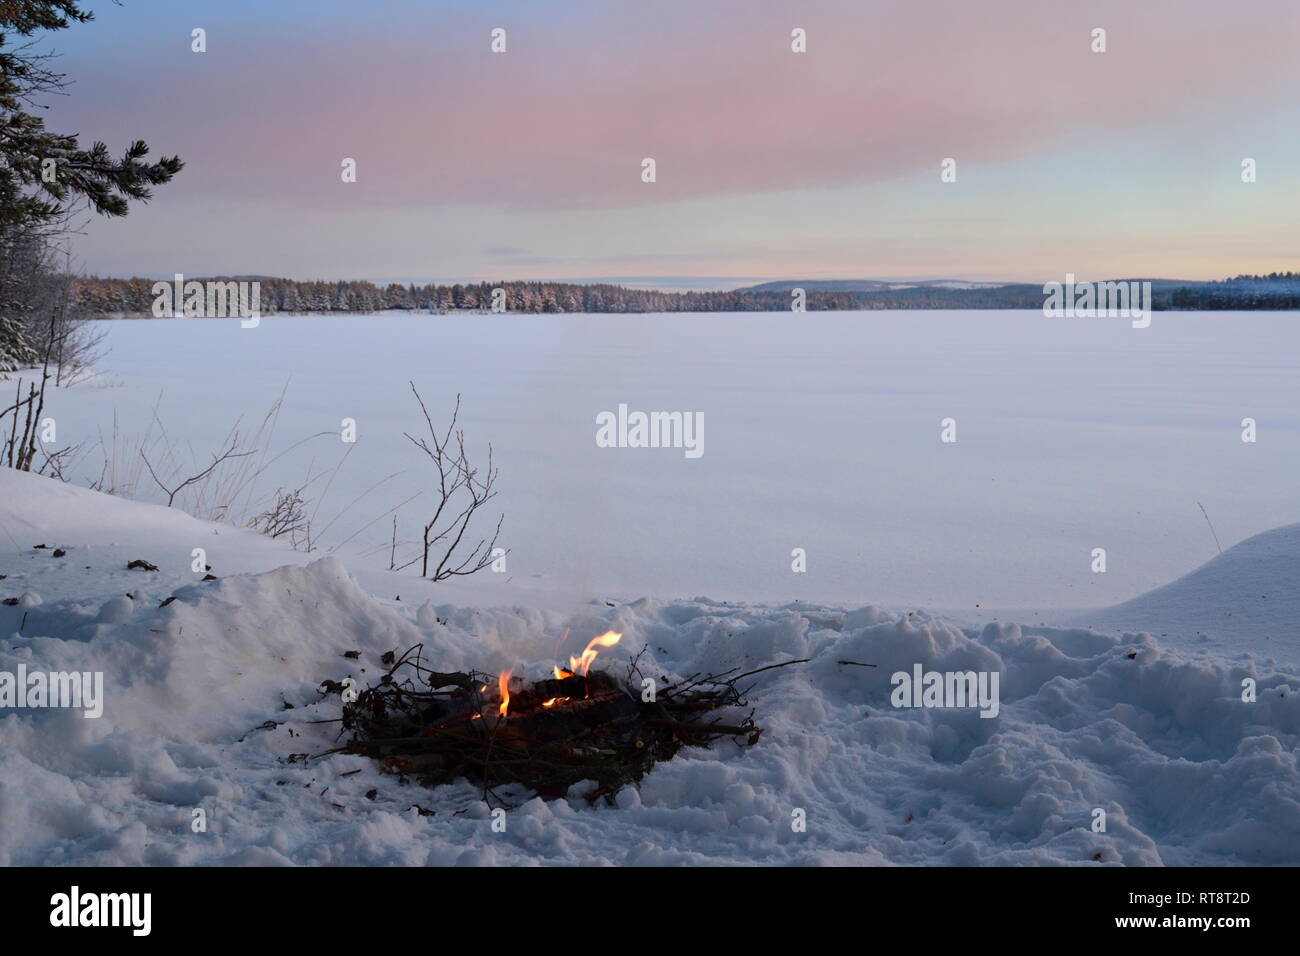 A fire is burning in the snow at the shore of an ice-covered lake as the sun is setting on a cold winter day. Stock Photo